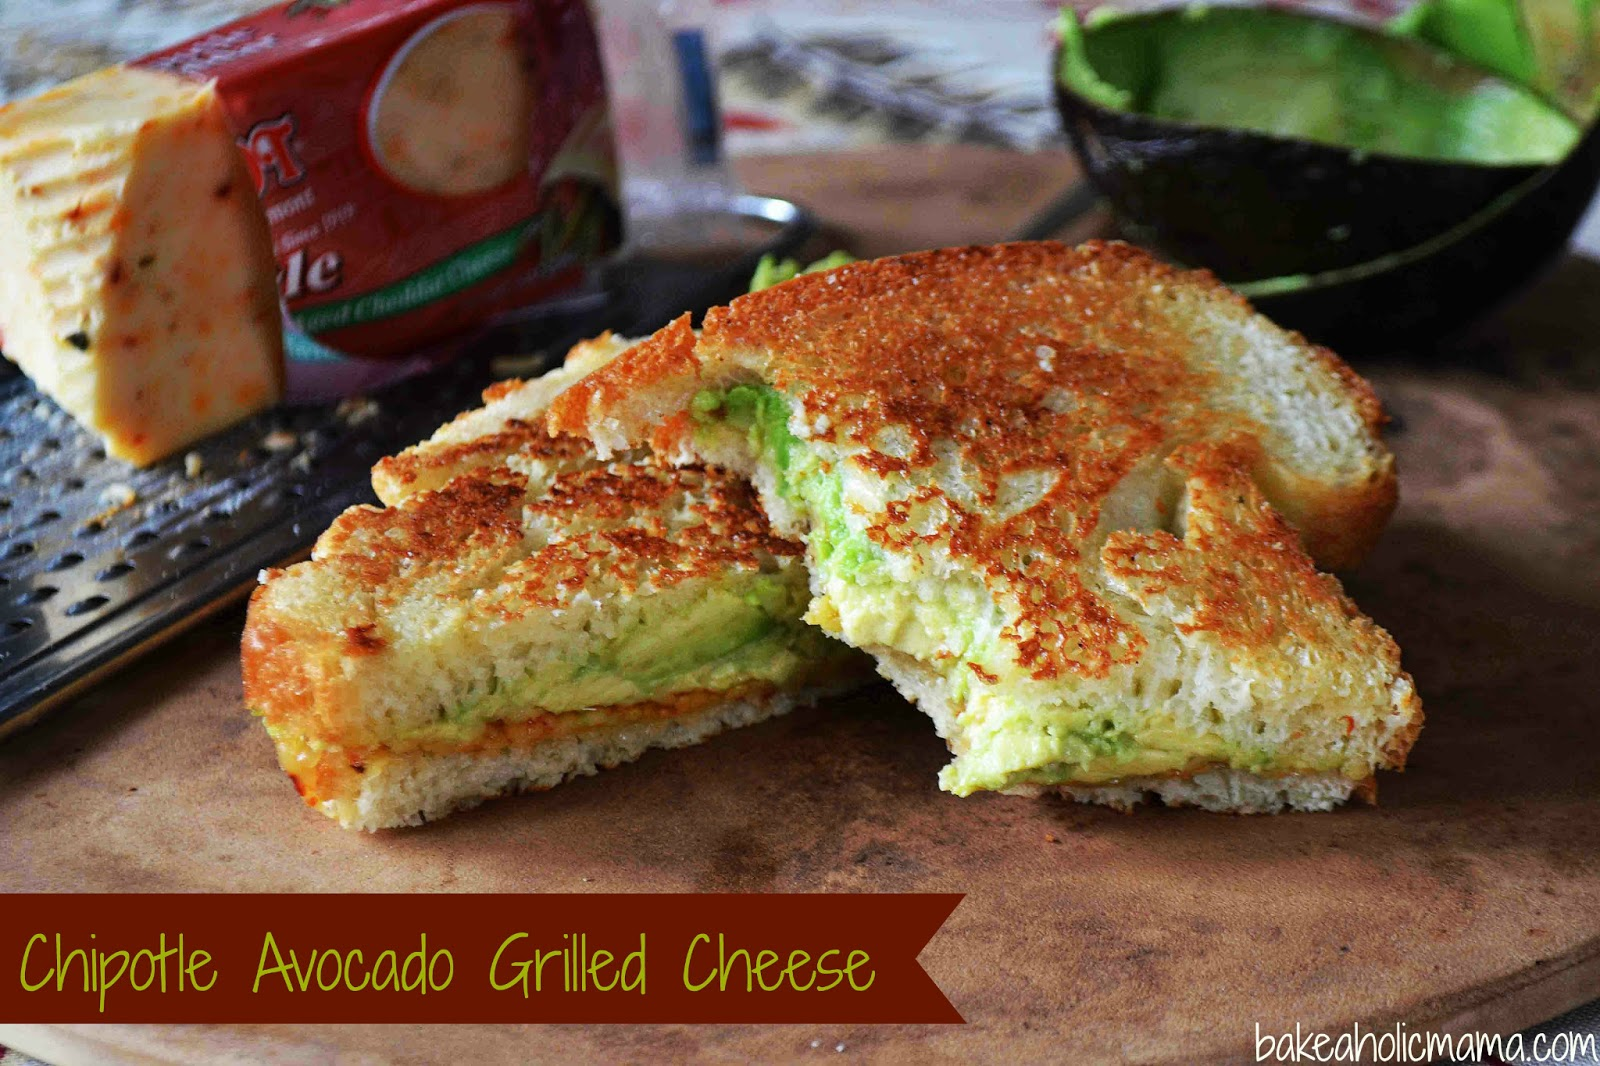 Bakeaholic Mama: Chipotle and Avocado Grilled Cheese Sandwiches